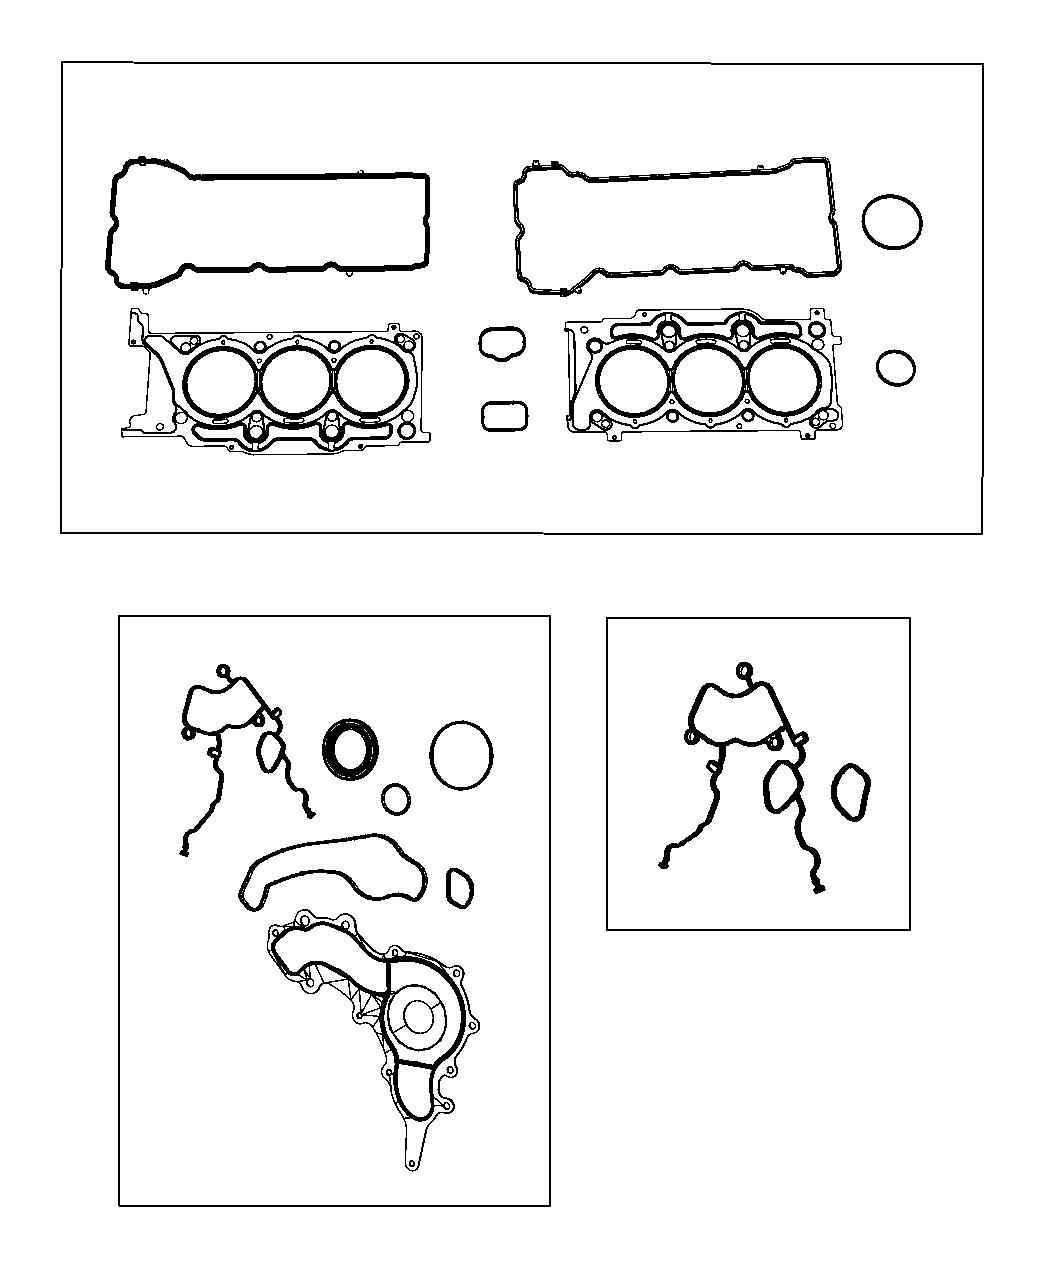 Jeep Wrangler Gasket Crossover Water Outlet 3 6l